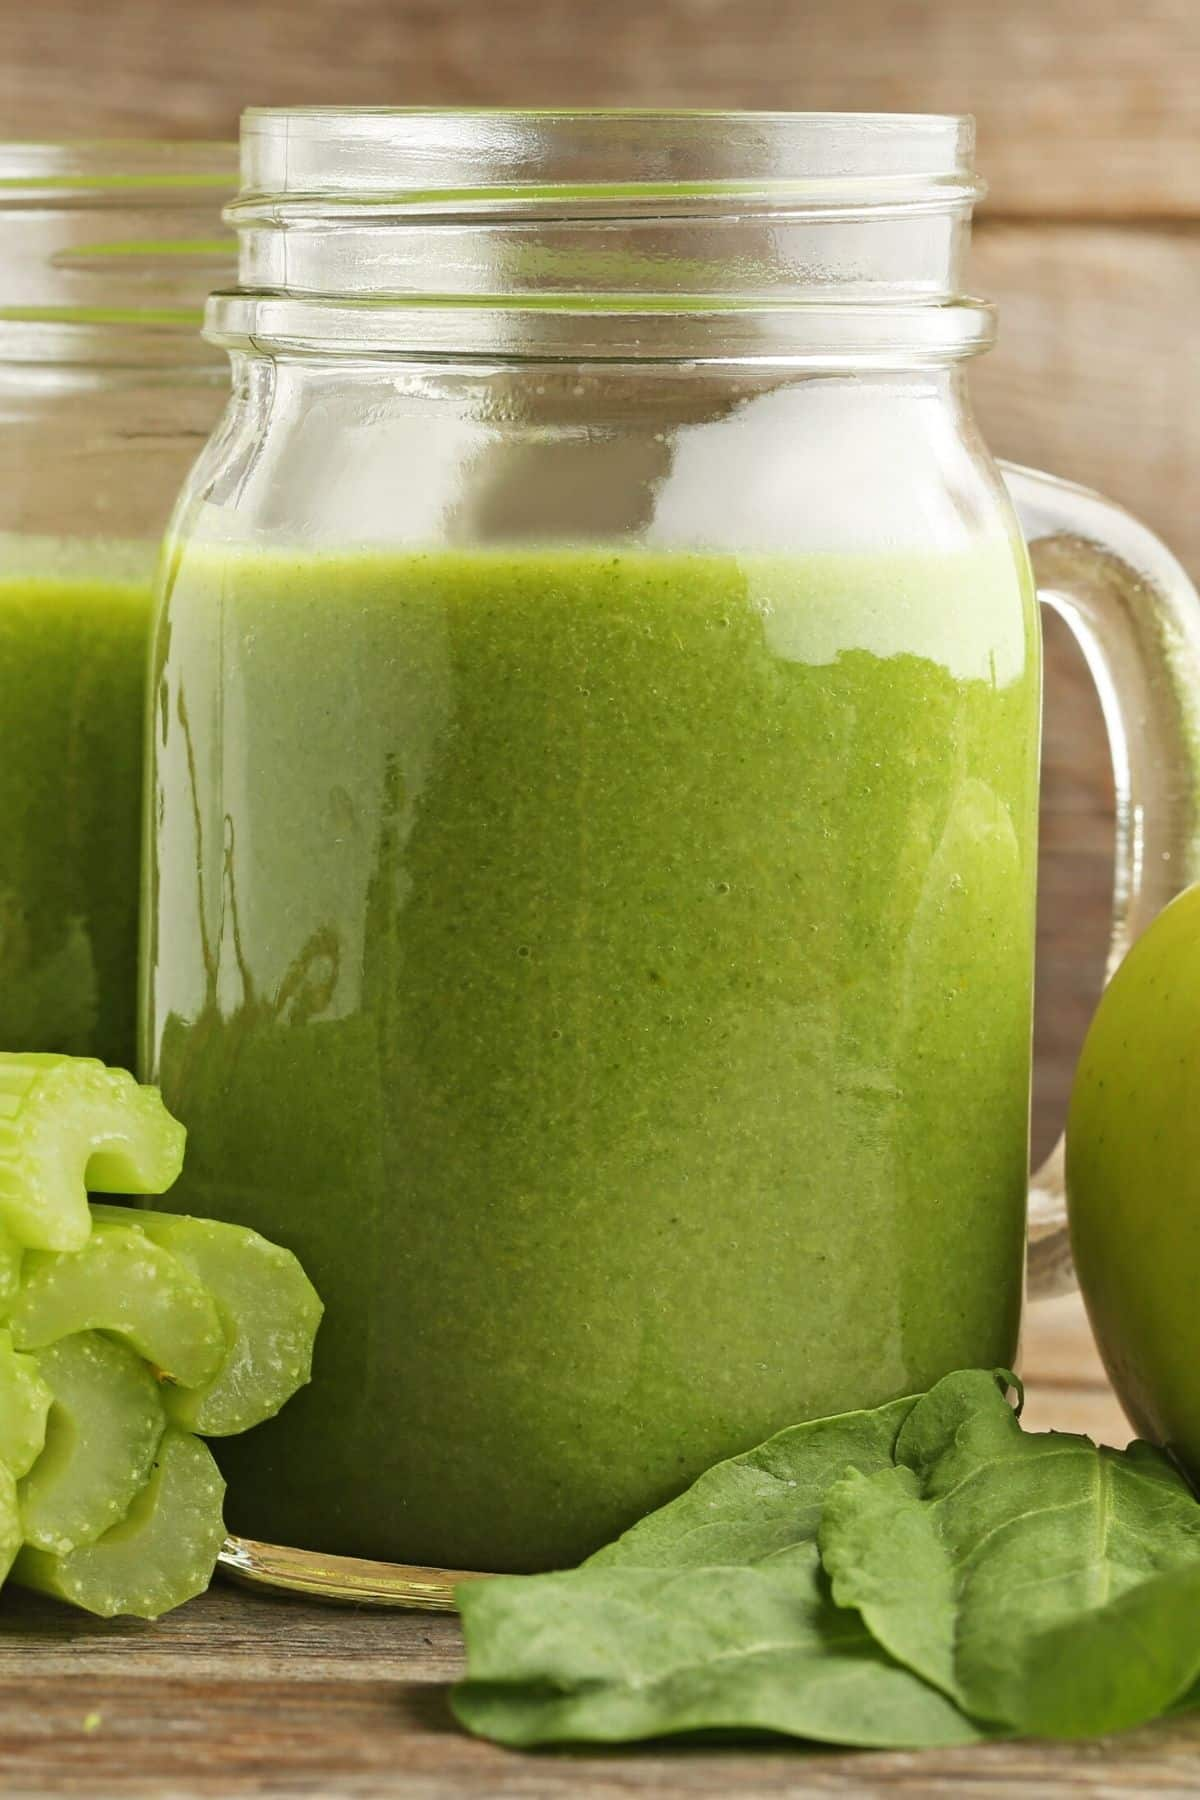 green juice made with celery in a jar